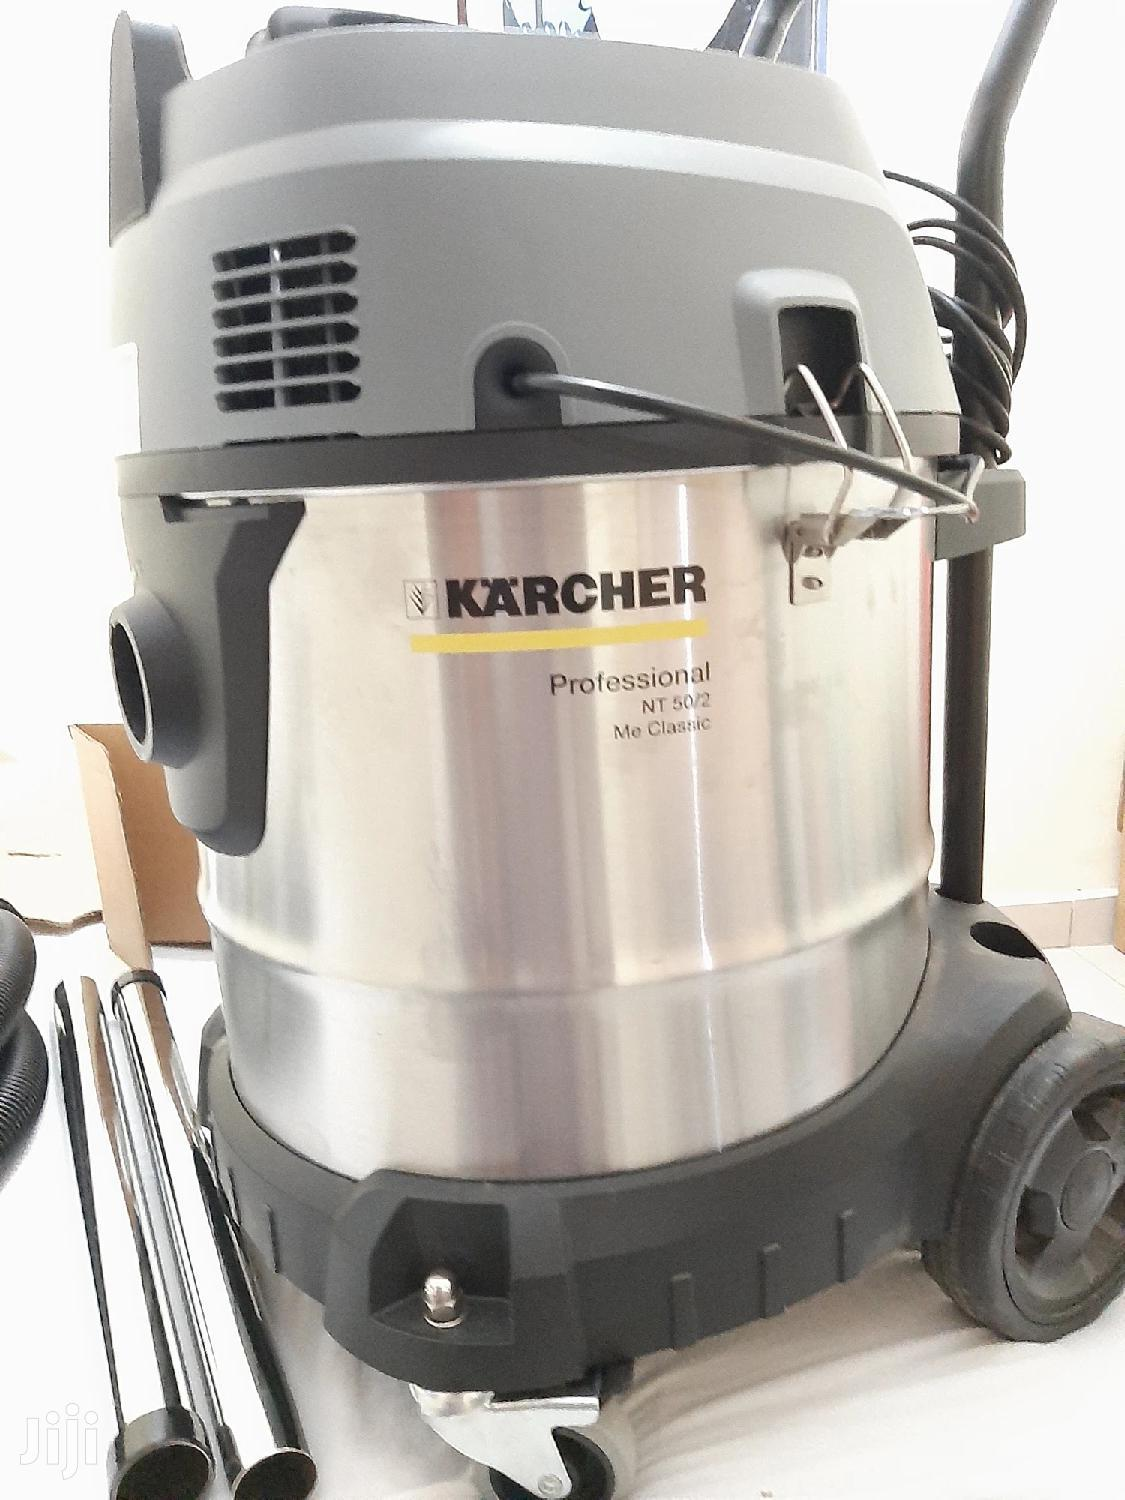 Archive: Karcher Wet And Dry Vacuum Cleaner NT 50/2 Me Classic